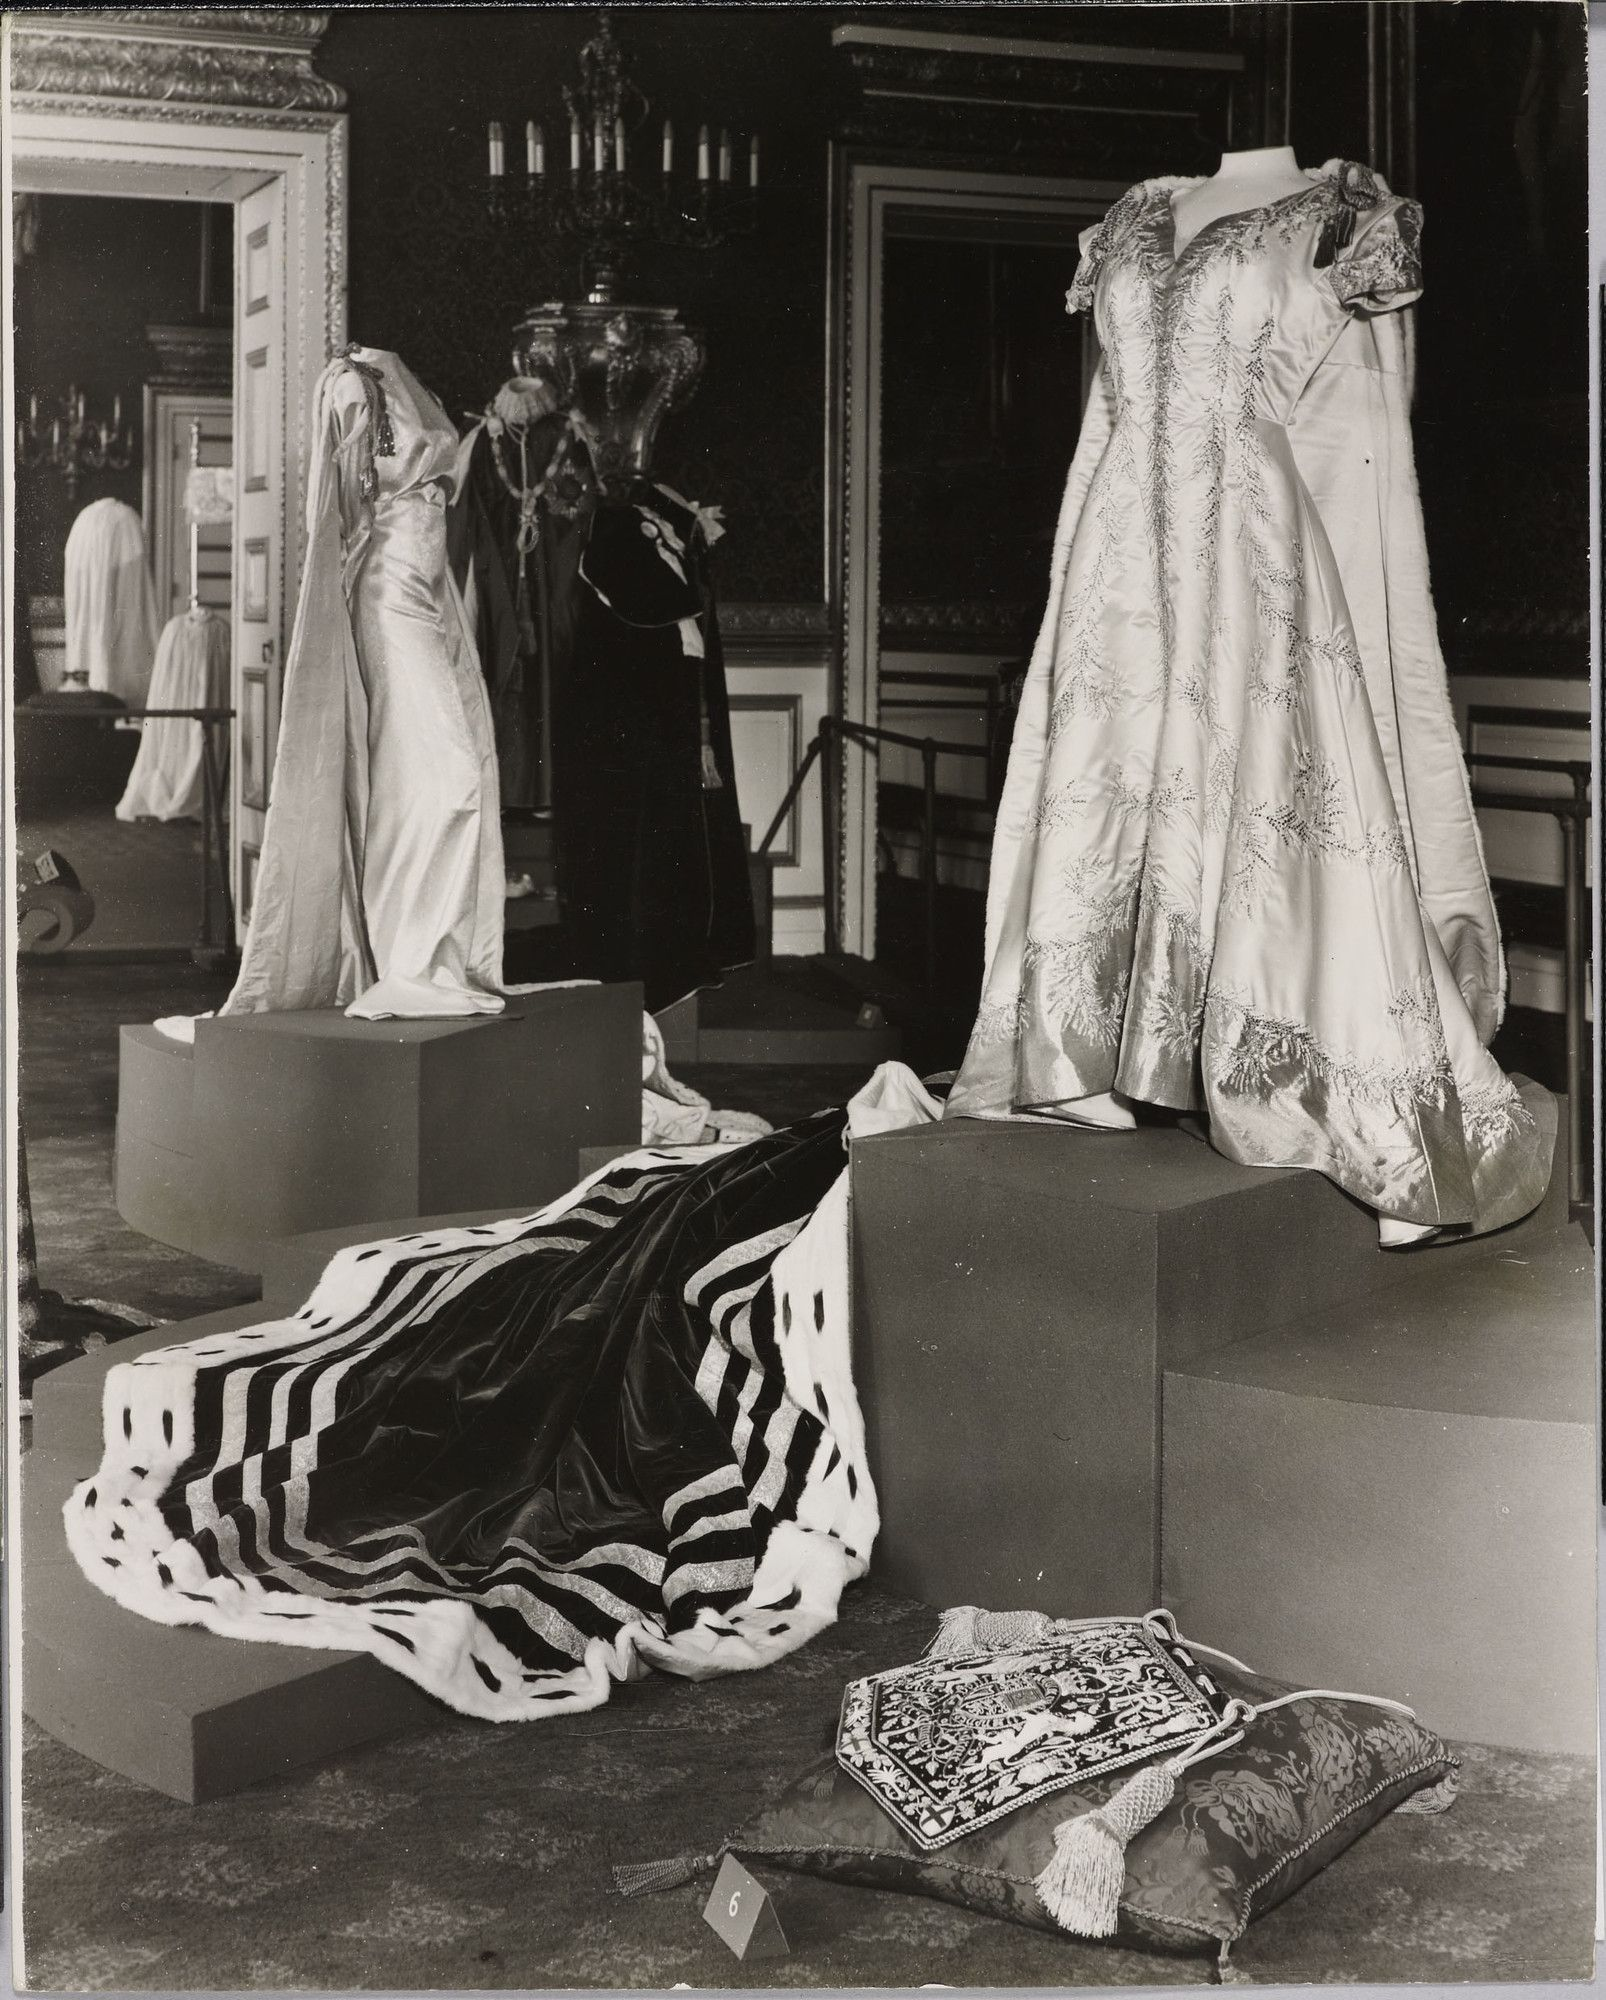 The Royal Collection: Coronation Robes on View at St James's Palace, 1953